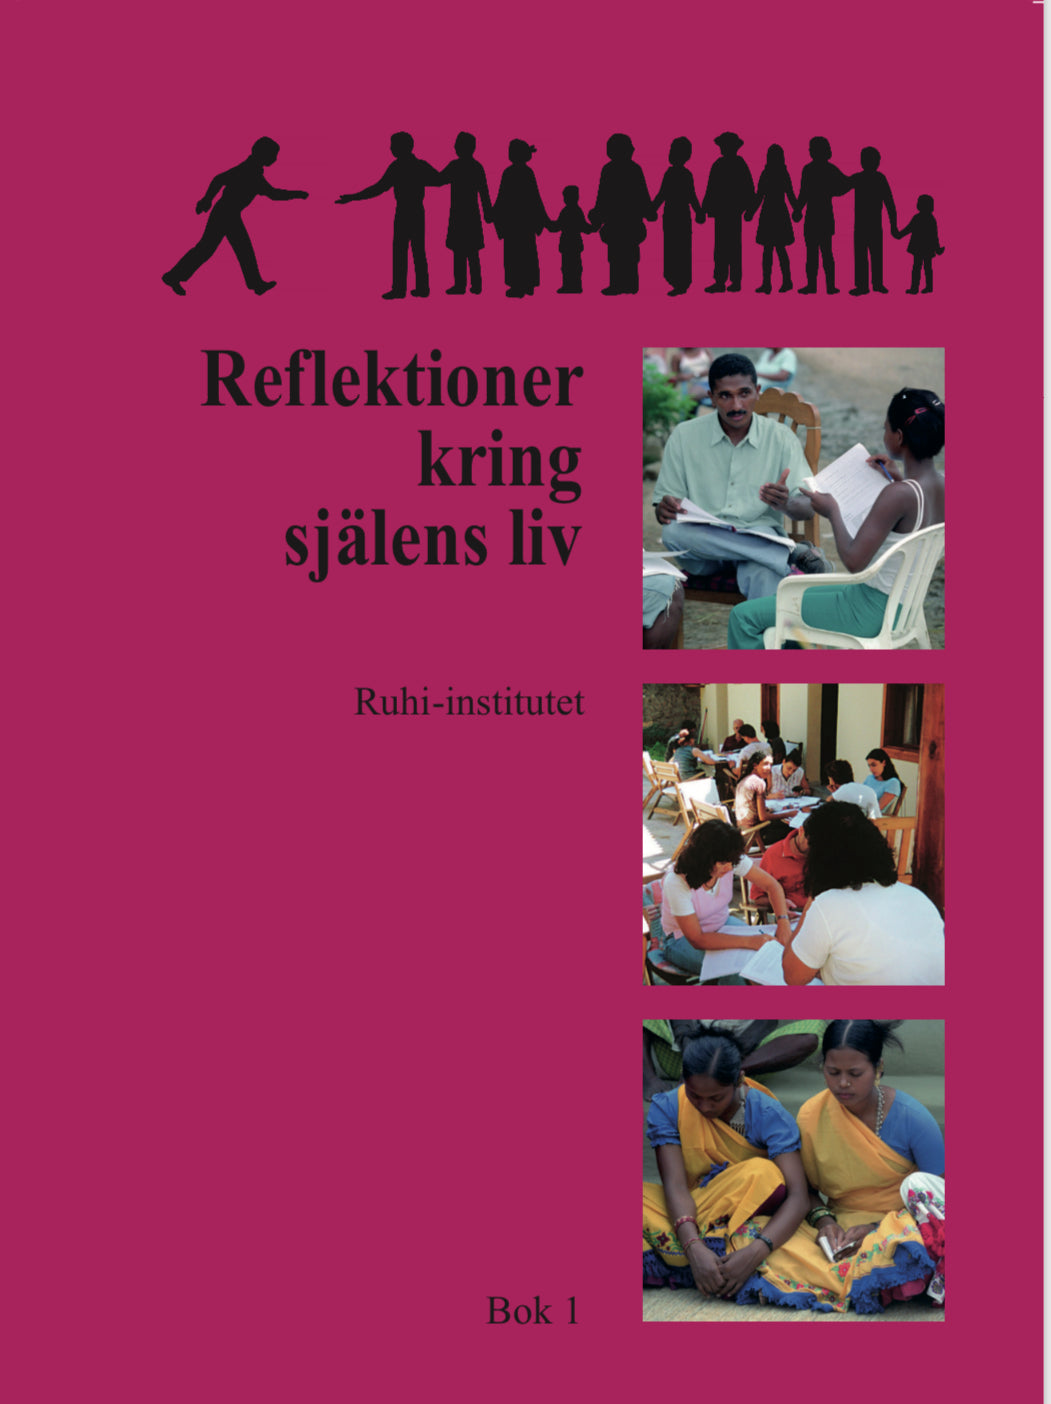 1a. Ruhi-institutets bok 1